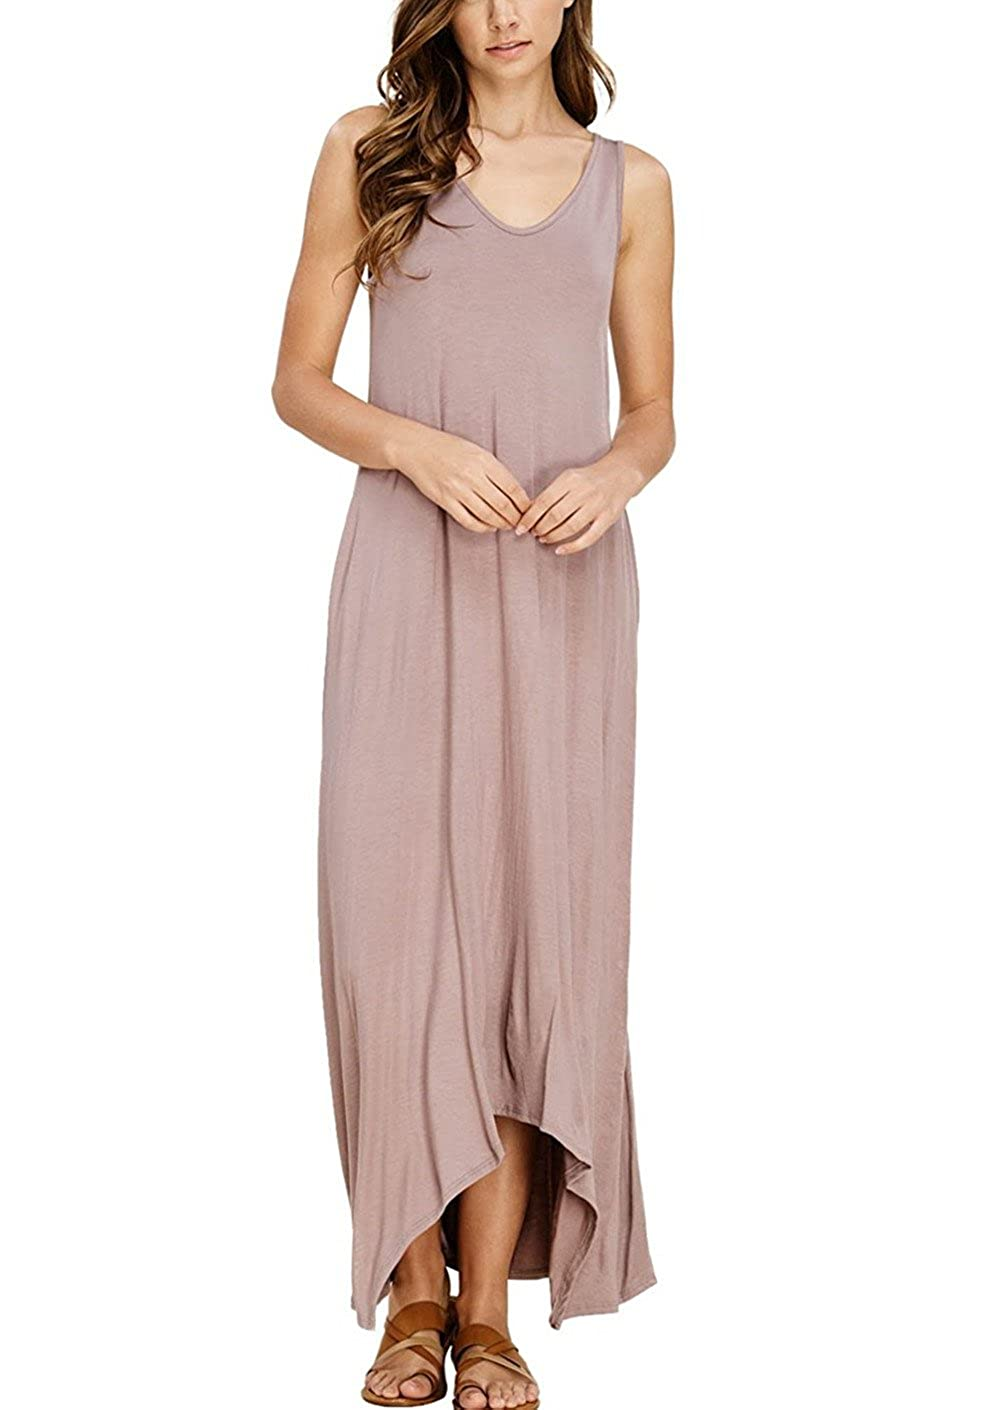 bluesh Pink TOPABLE Womens Summer Soft Fabric V Neck Sleeveless Long Maxi Dress with Side Pockets